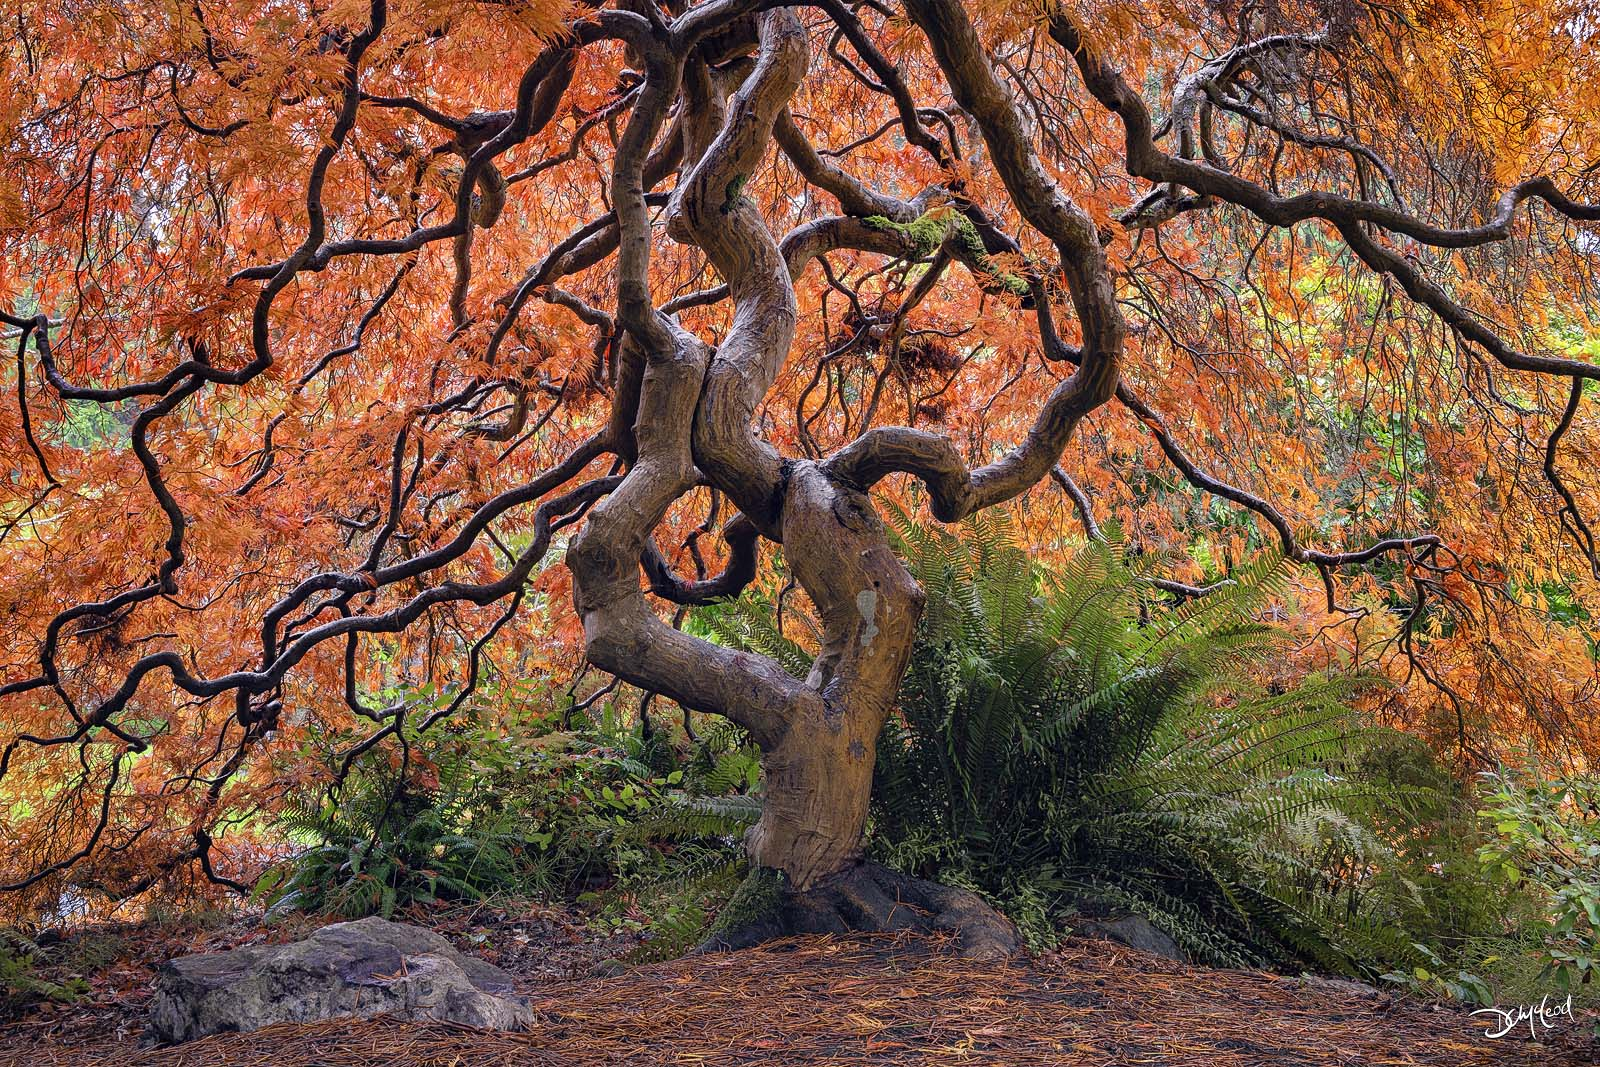 Large old Japanese maple tree with twisting branches and orange leaves in Victoria, British Columbia, Canada.